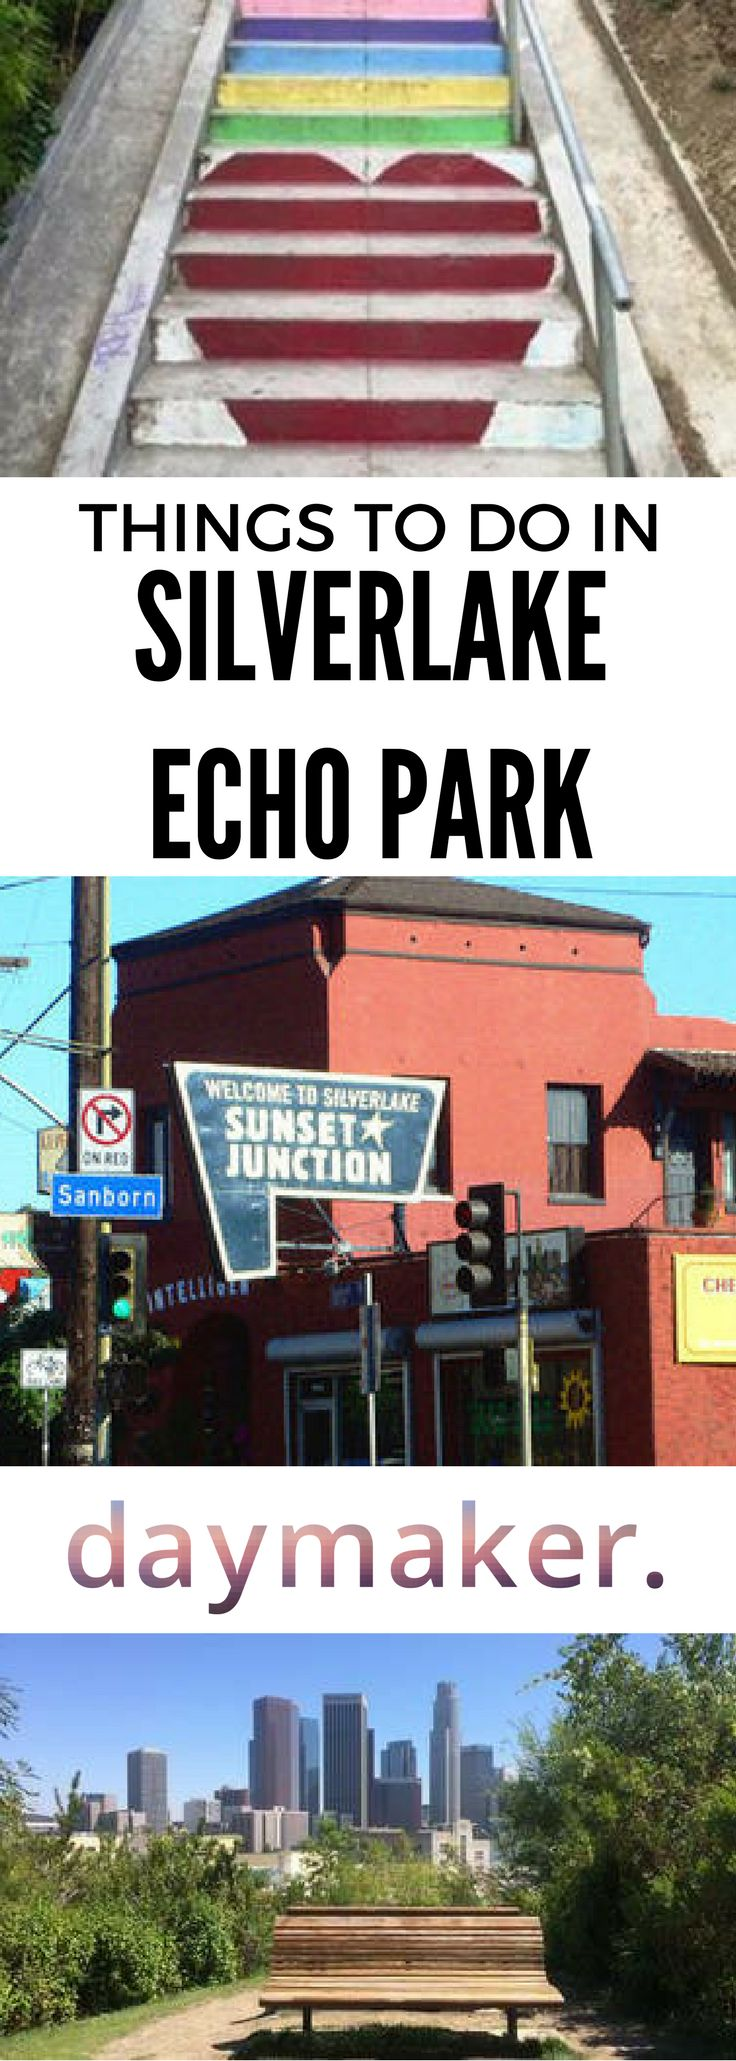 We love this neighborhood for the great live music events, fresh ground coffee, and vibrant arts scene. There are so many things to do in Silverlake and Echo Park, including exploring the Sunset Junction, climbing the Micheltorena Stairs, and visiting Hermosa Natural Park!